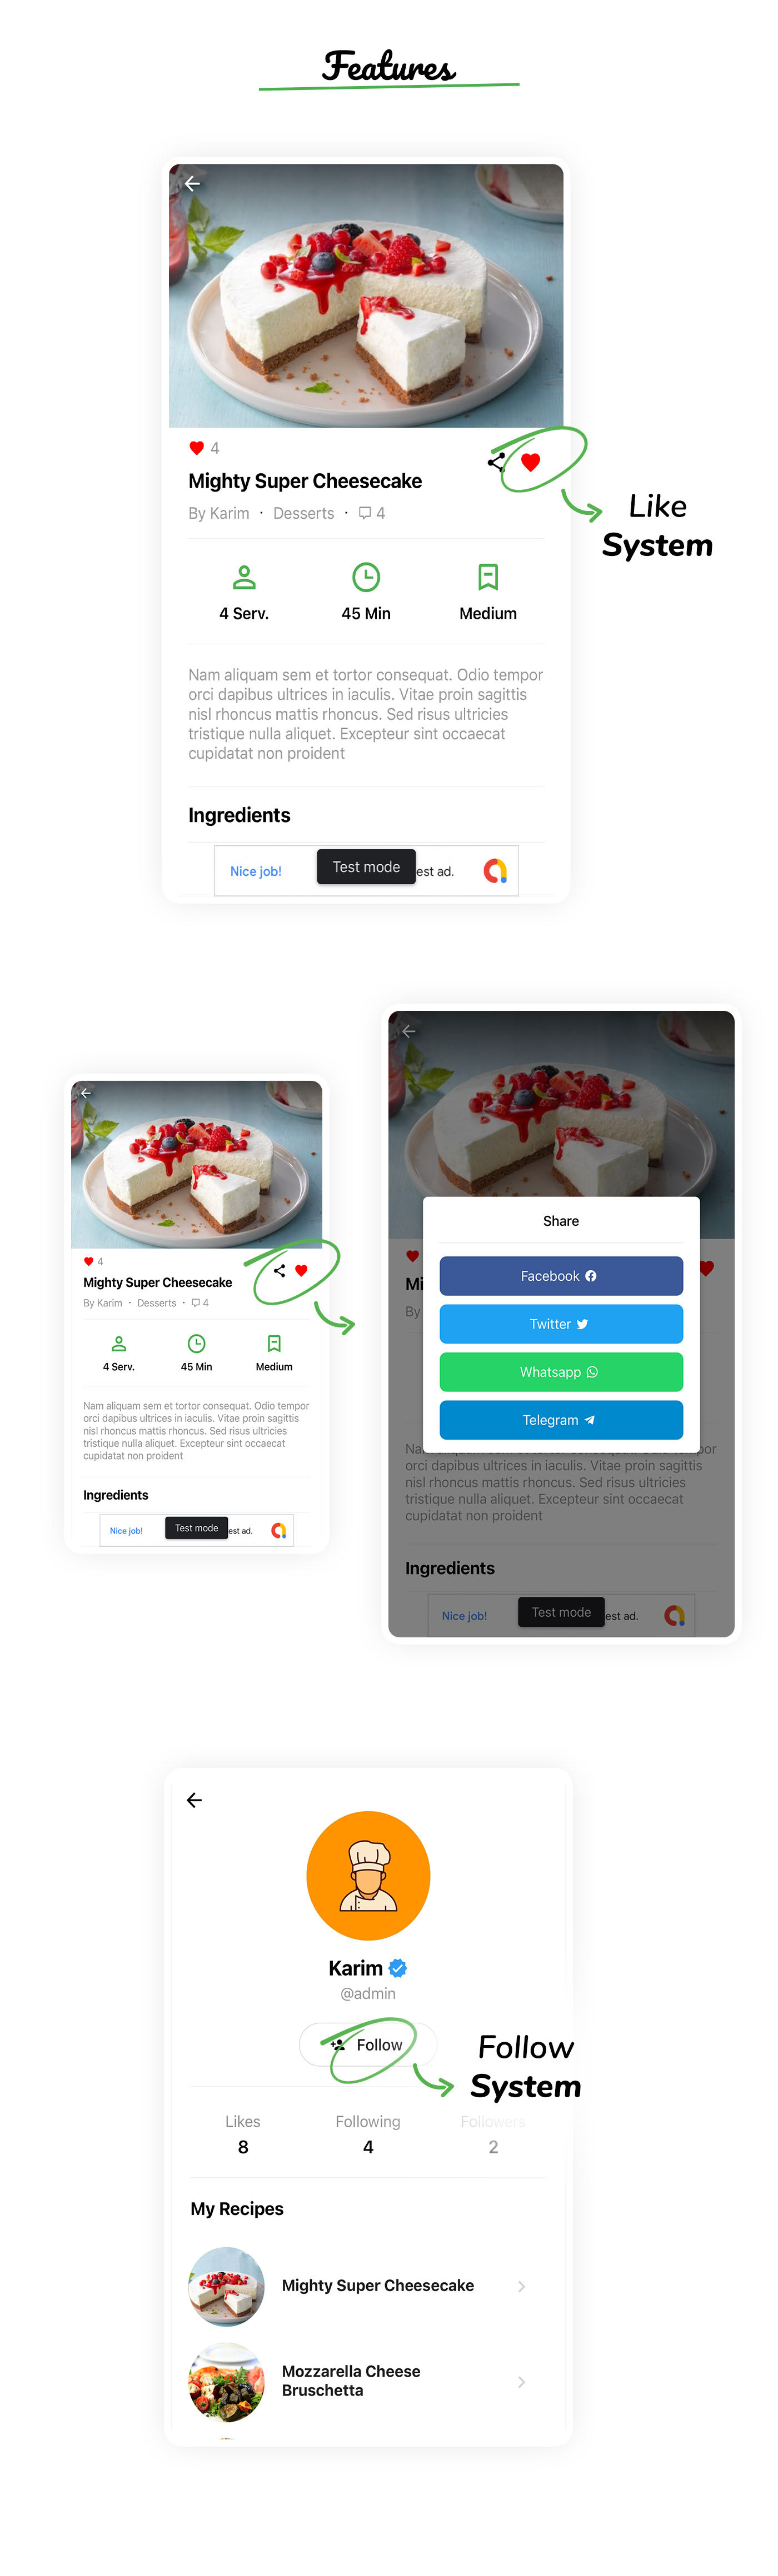 RealFood Mobile   React Native Recipes & Community Food - 4